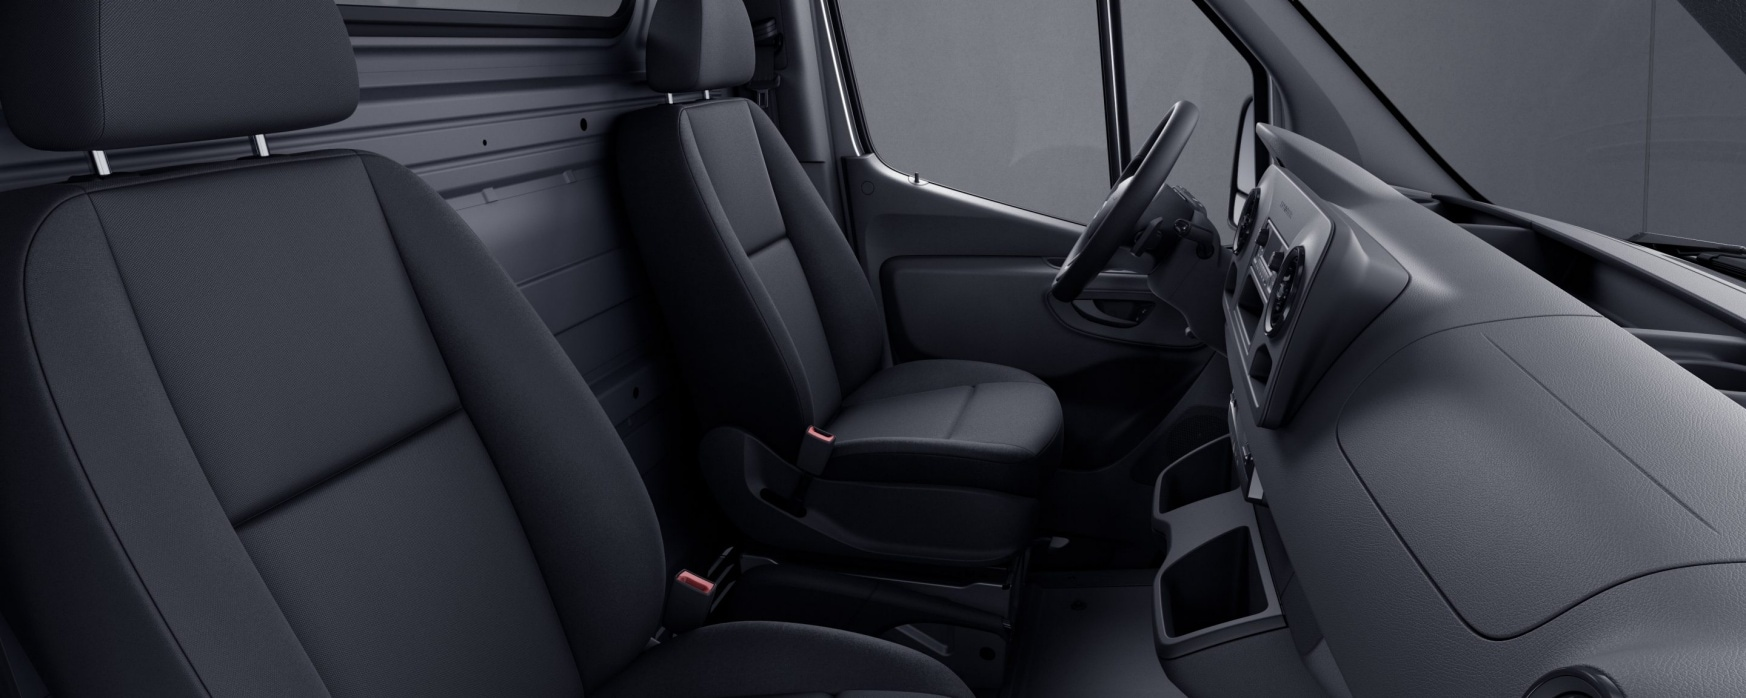 Sprinter Chassis Cab, Maturin black fabric